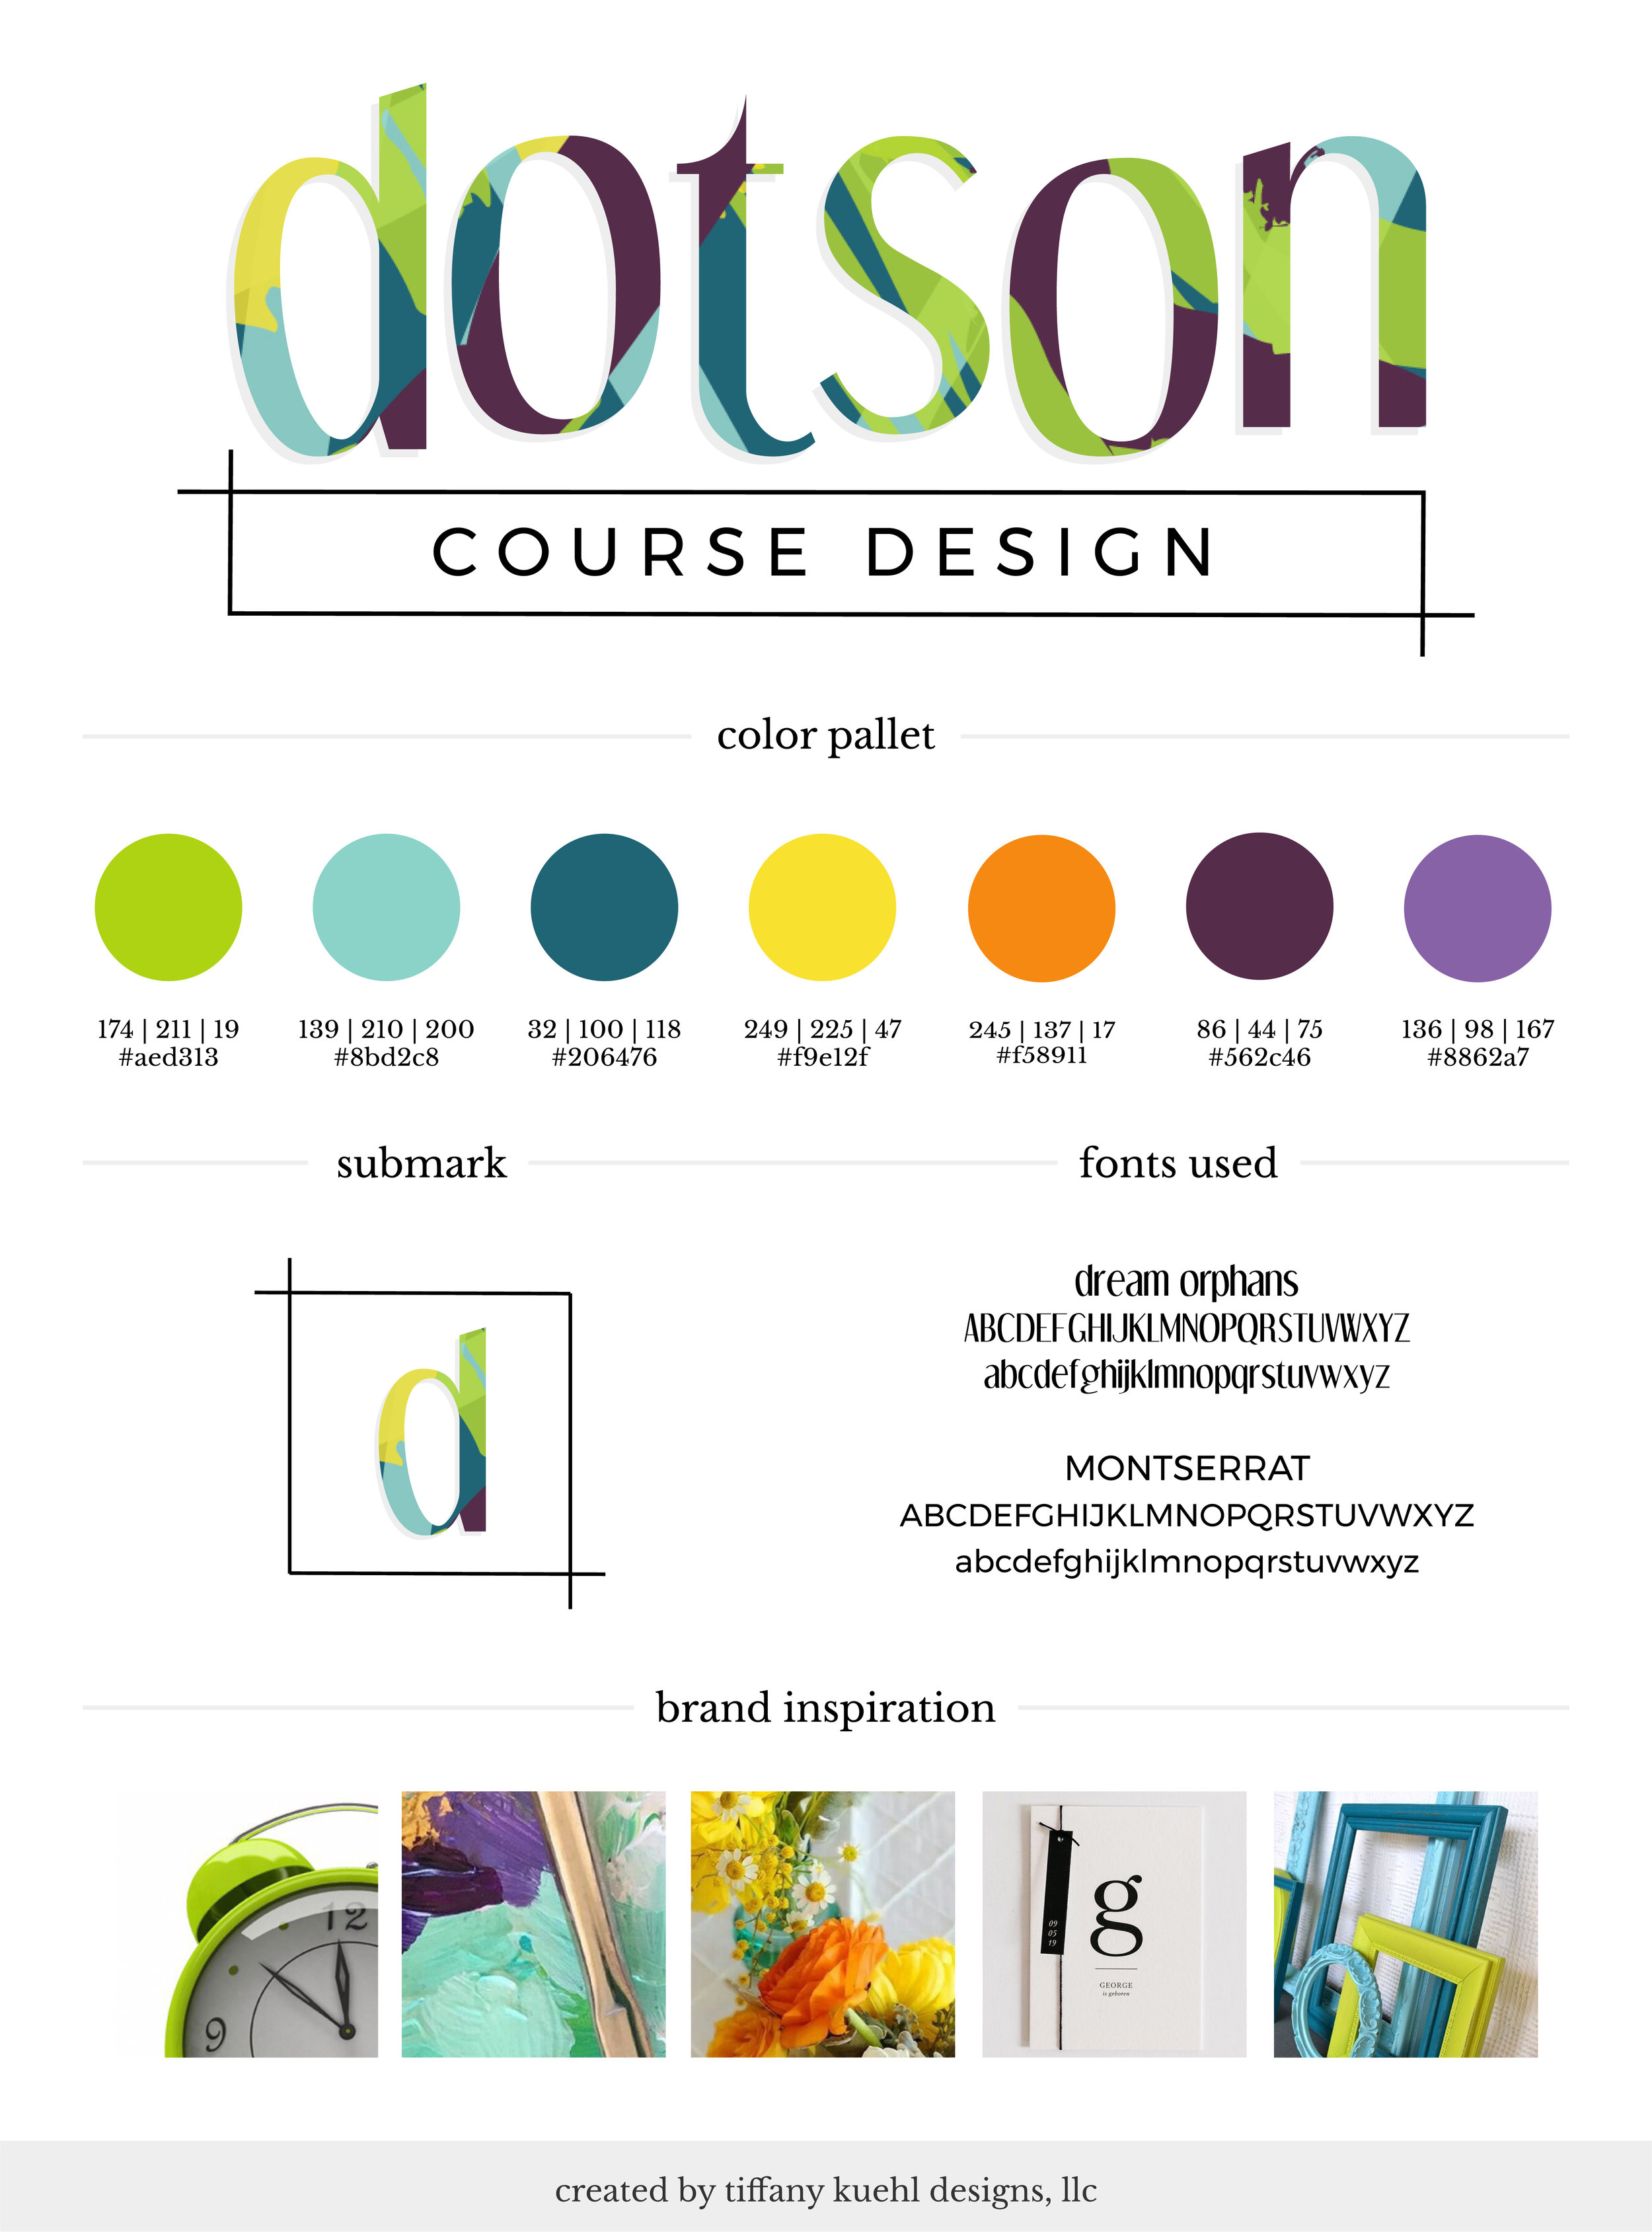 Dotson Course Design Brand Board | Tiffany Kuehl Designs  This #brandstyleguide says it all! We paired clean and modern fonts with some of the bright and poppy colors from the #colorpalette and it came together so well!  #coursedesign #coursecreation #branding #logo #logodesign #brandstylist #branddesigner